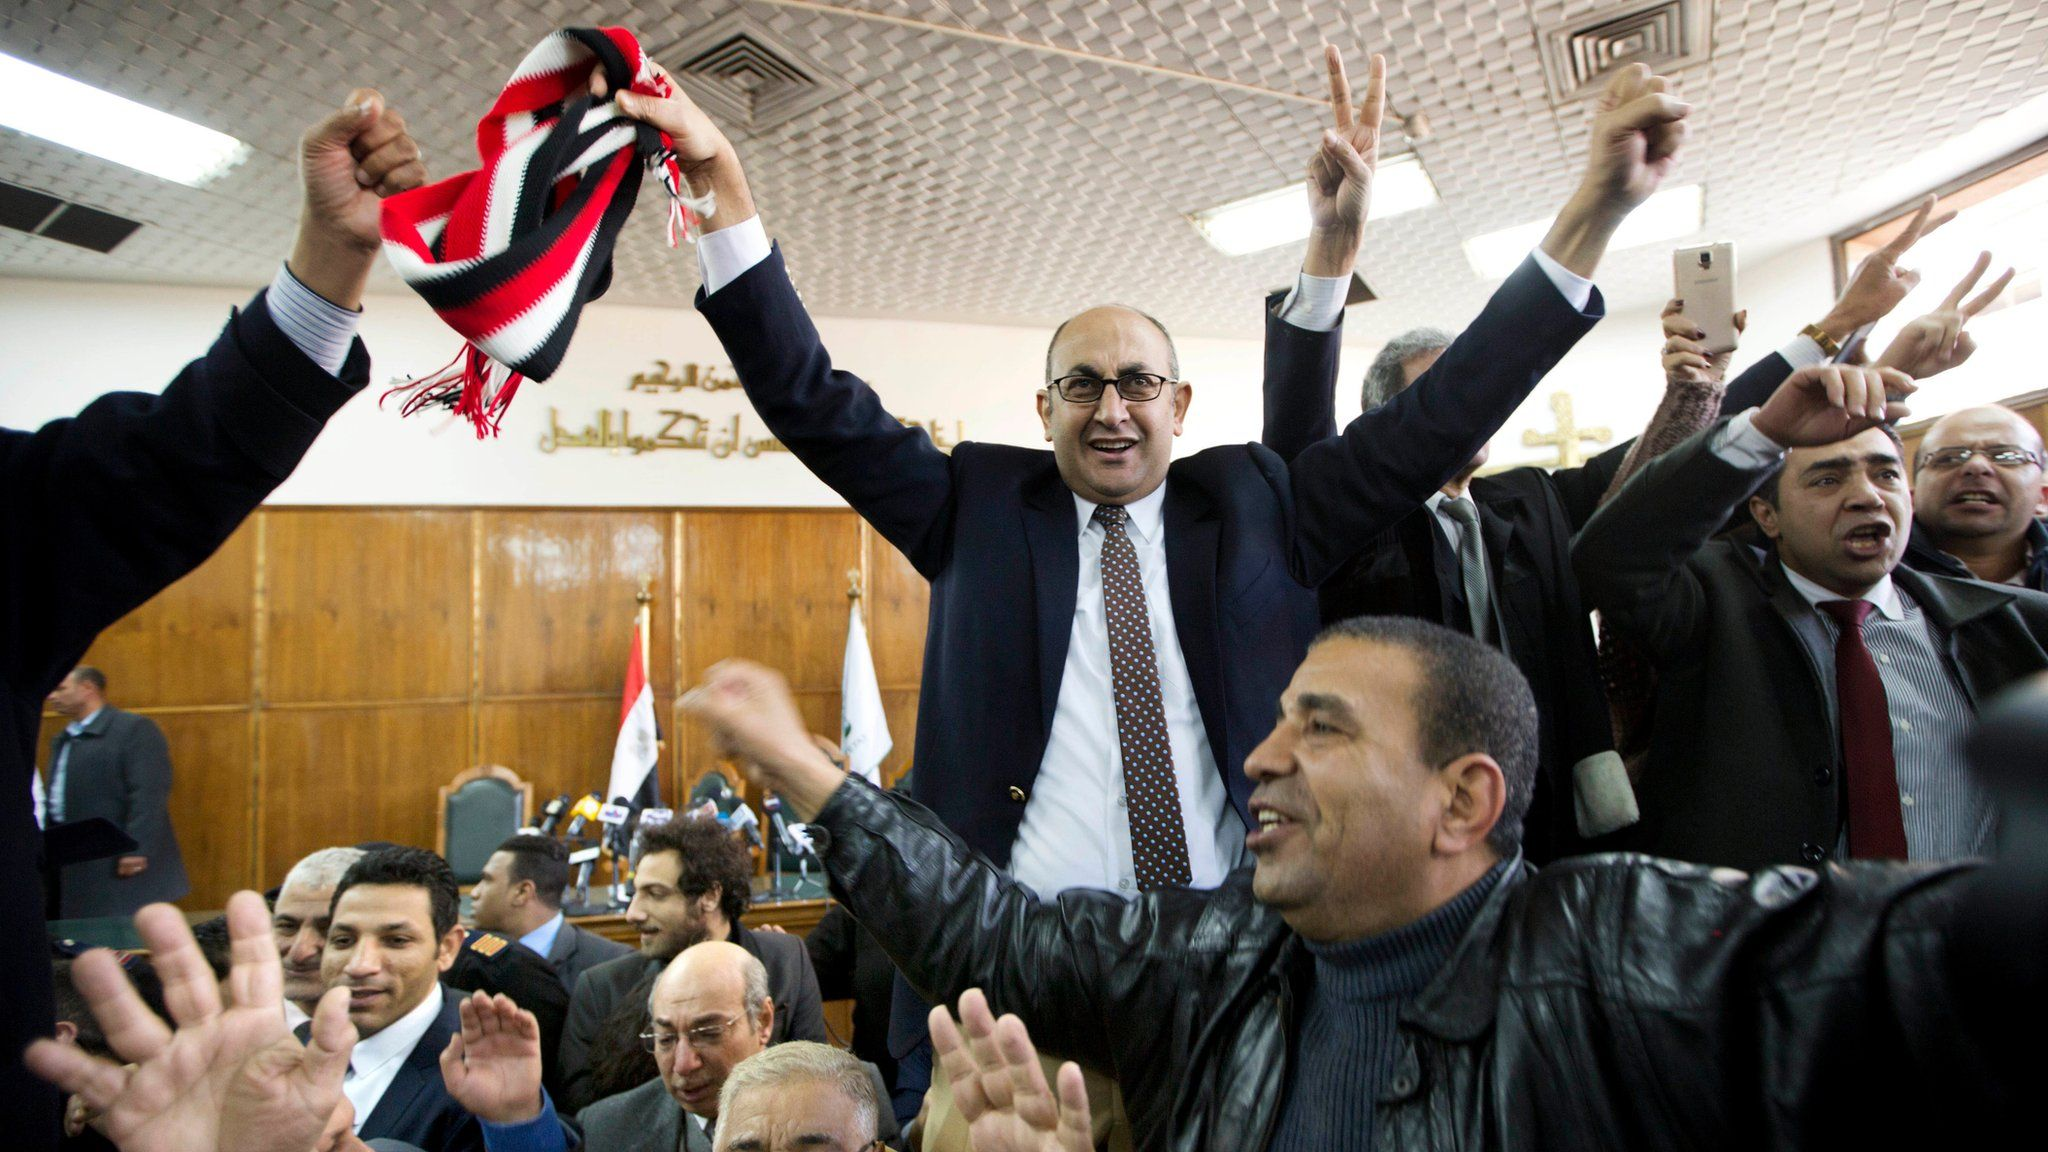 Lawyers and activists celebrate after the High Administrative Court rejects an appeal by the government against a ruling stopping the transfer of Tiran and Sanafir islands to Saudi Arabia (16 January 2017)